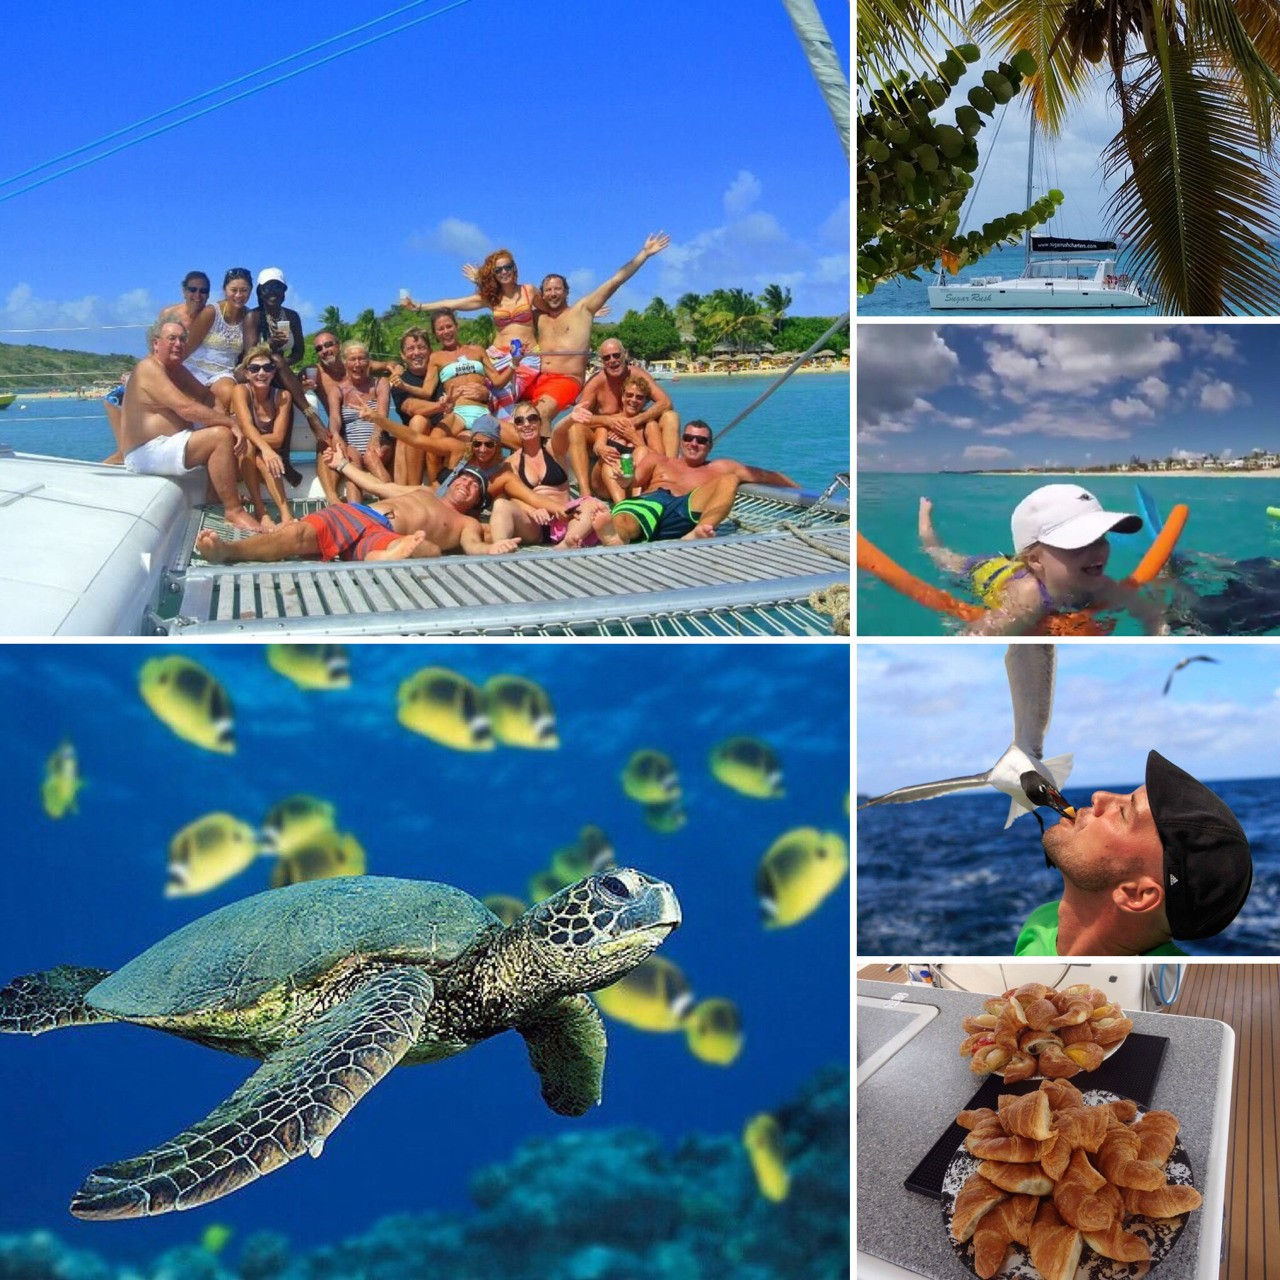 Are you in ❤️ST.MAARTIN and LOVE sailing?⛵️Check out our new trip ☀️ Wednesday - June 7th - 2 ISLAND STOP. 1st stop for snorkeling at Creole Rock (French nature reserve). 2nd stop at Rendezvous Bay - Anguilla, with fresh water pool on the beach and buffet lunch at the resort restaurant. 3rd stop at La Samanna in Sint Martin. You will see the French side - Dutch side and Anguilla all in one day.🏝🐠 Thursday - June 8th - AROUND THE ISLAND . 1st stop for snorkeling at Creole Rock (French nature reserve). 2nd Stop for lunch at restaurant in Anse-Marcel, on the French side. 3rd stop at Tintamarre (deserted island) in French nature reserve. This is one of the best beaches to see and swim with turtle's. 🏖🐢 ☀️ NEW TOUR ☀️- Friday - June 9th Tintamarre- Anguilla 1st stop at Tintamarre (deserted island) in French nature reserve. This is one of the best beaches to see and swim with turtle's. 2nd stop at Rendezvous Bay - Anguilla, with fresh water pool on the beach and buffet lunch at the resort restaurant.🏝🐢 Saturday - June 10th - LITTLE BAY-ANGUILLA. 1st stop at Anguilla Nature reserve for snorkeling and paddle boarding. This secluded and beautiful beach is only accessible by boat, and is surrounded by high cliffs and small caves. Lunch will be on board. On the way back we will have a 2nd stop at La Samanna for a quick swim in the sea or some cliff jumping. La Samanna is an exclusive hotel build on the border of half-French, half-Dutch island of SXM. ⛱🐟🏝 Check out our Trip Advisor and our website. For more details contact us on +1 721 580 4404, or info@sugarrushcharters.com🙂